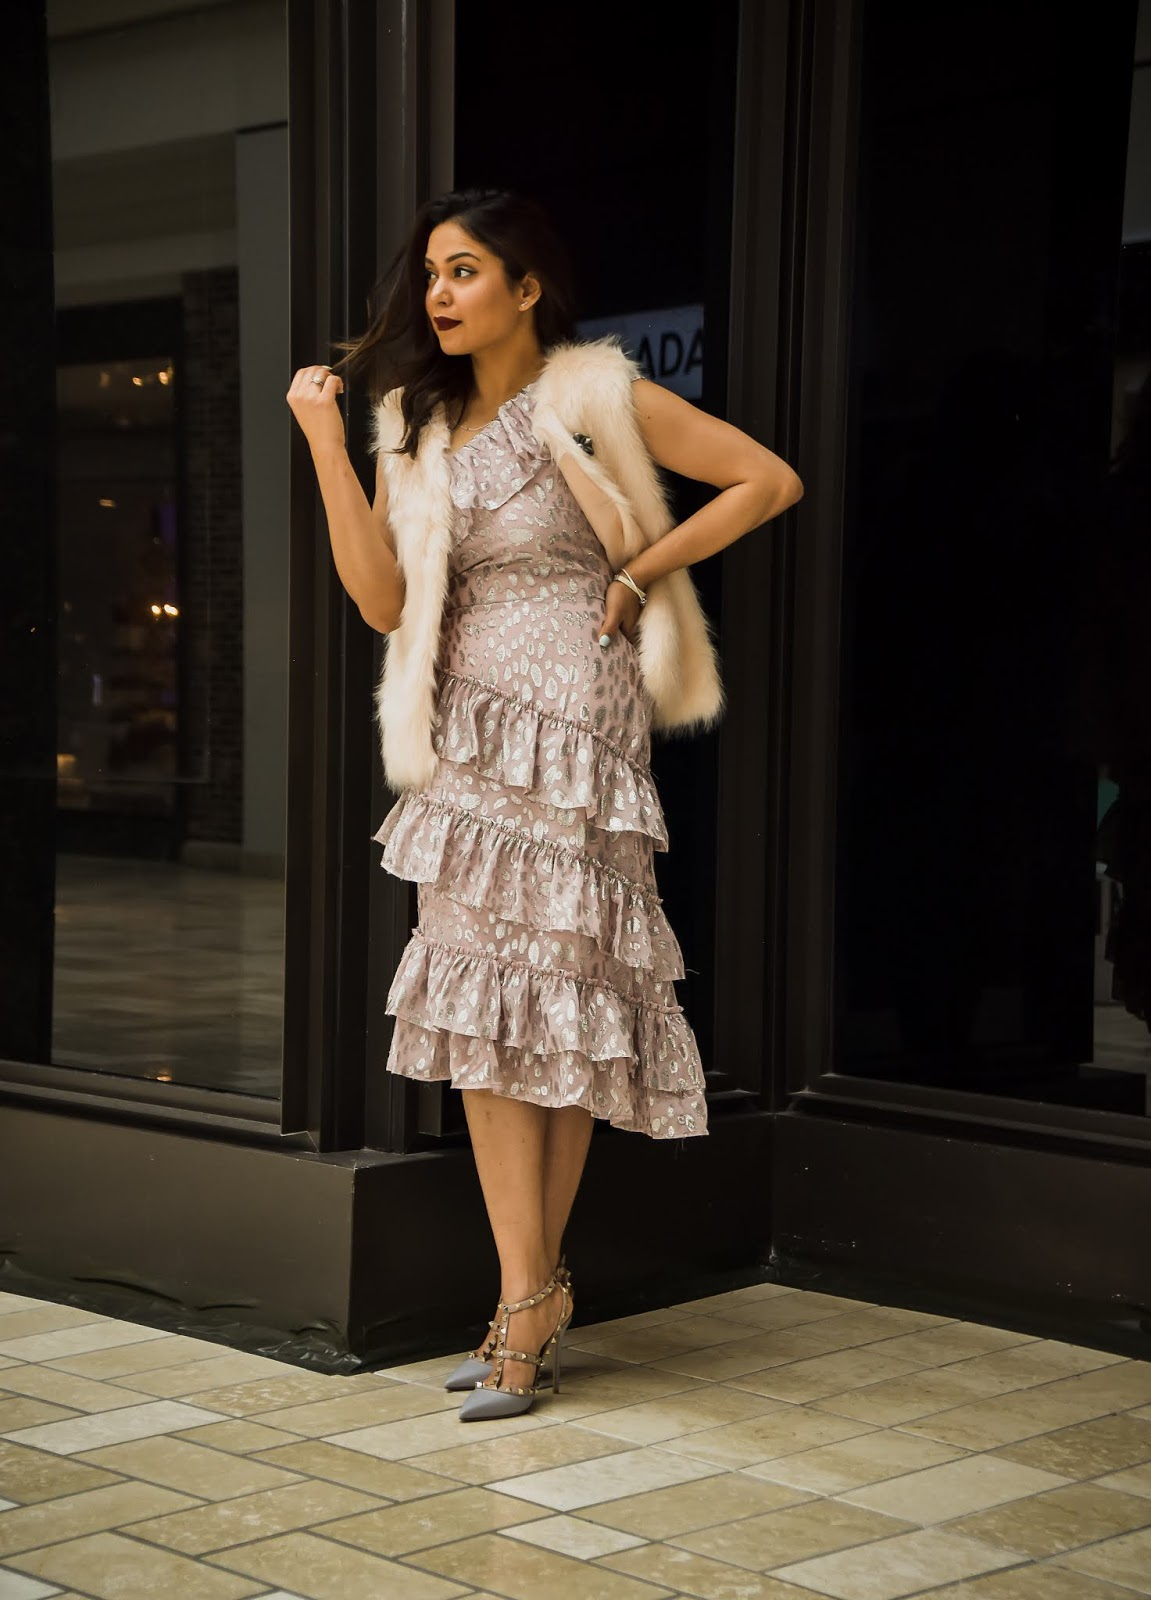 valentines day, lover and friends pick ruffle dress, pandora jewelry, fashion, tysons ciorner mall, dc blogger, saumya shiohare, myriad musings